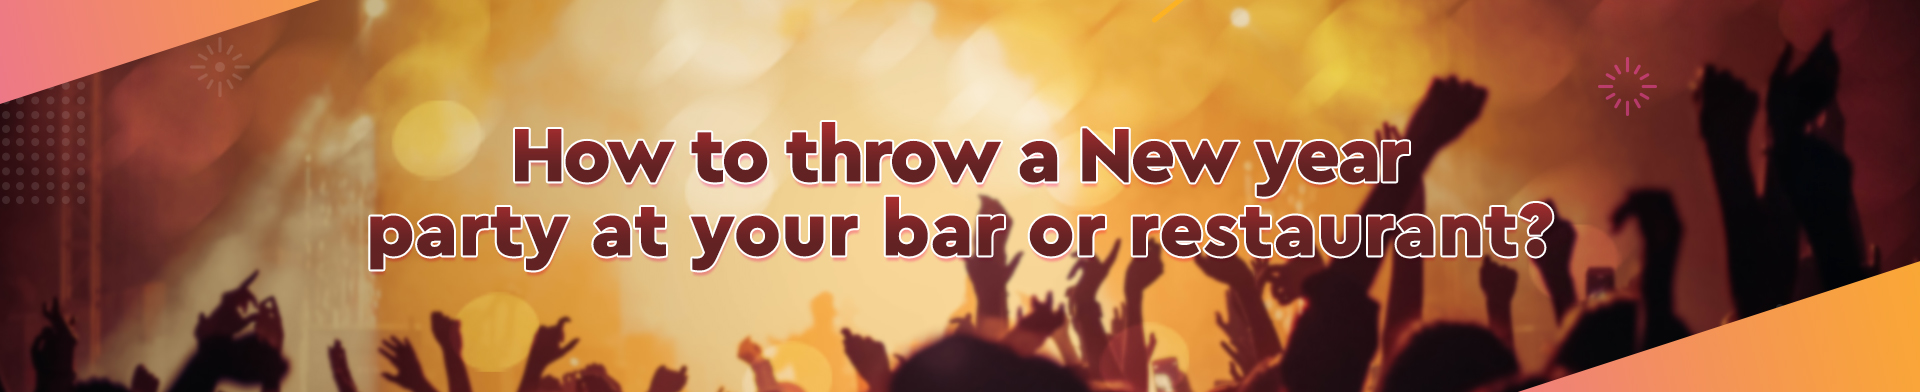 How to throw a New year party